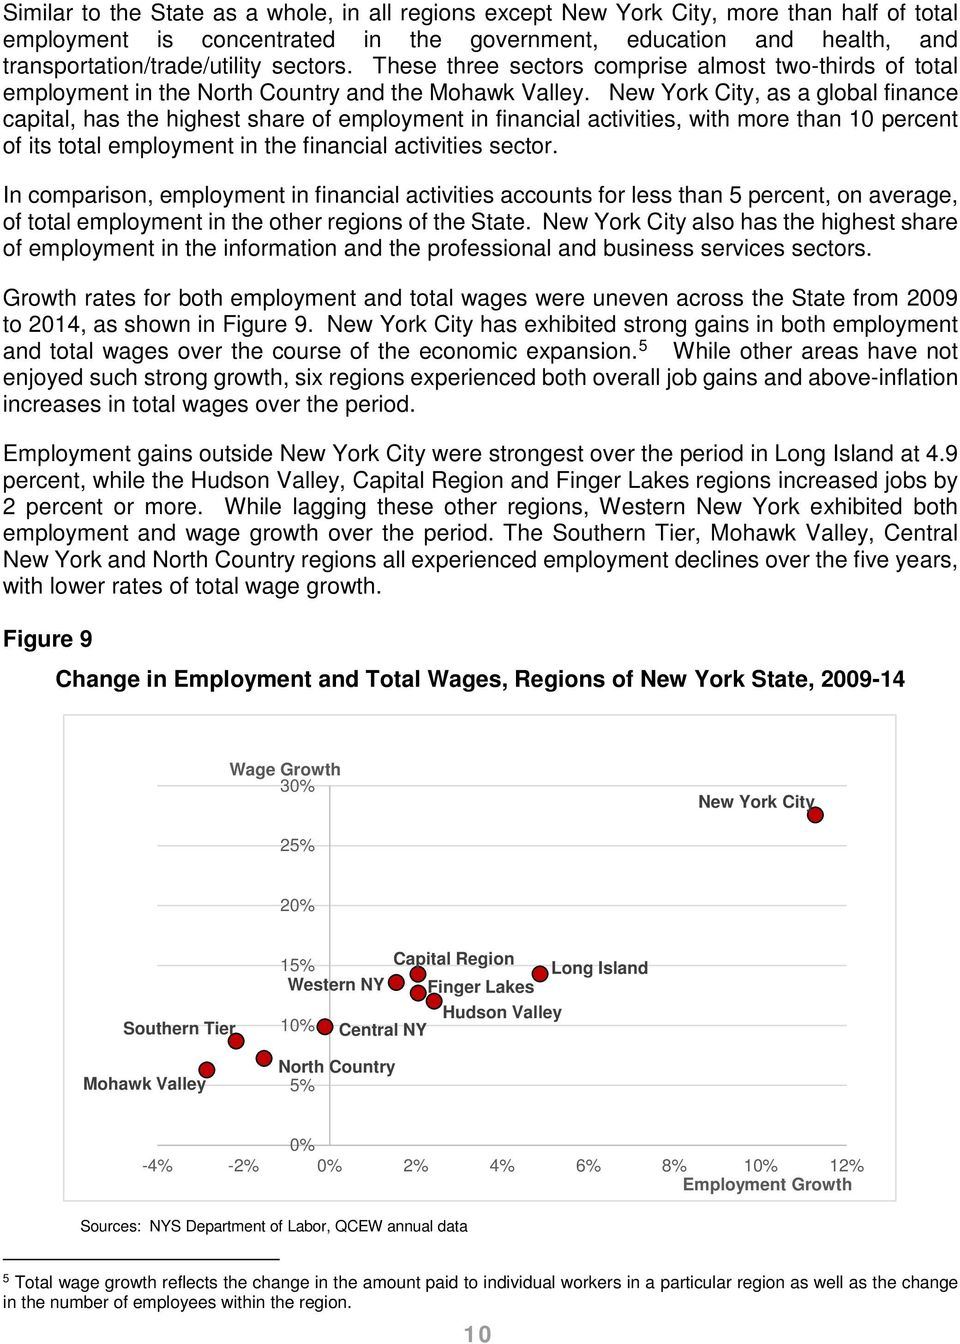 New York City, as a global finance capital, has the highest share of employment in financial activities, with more than 10 percent of its total employment in the financial activities sector.